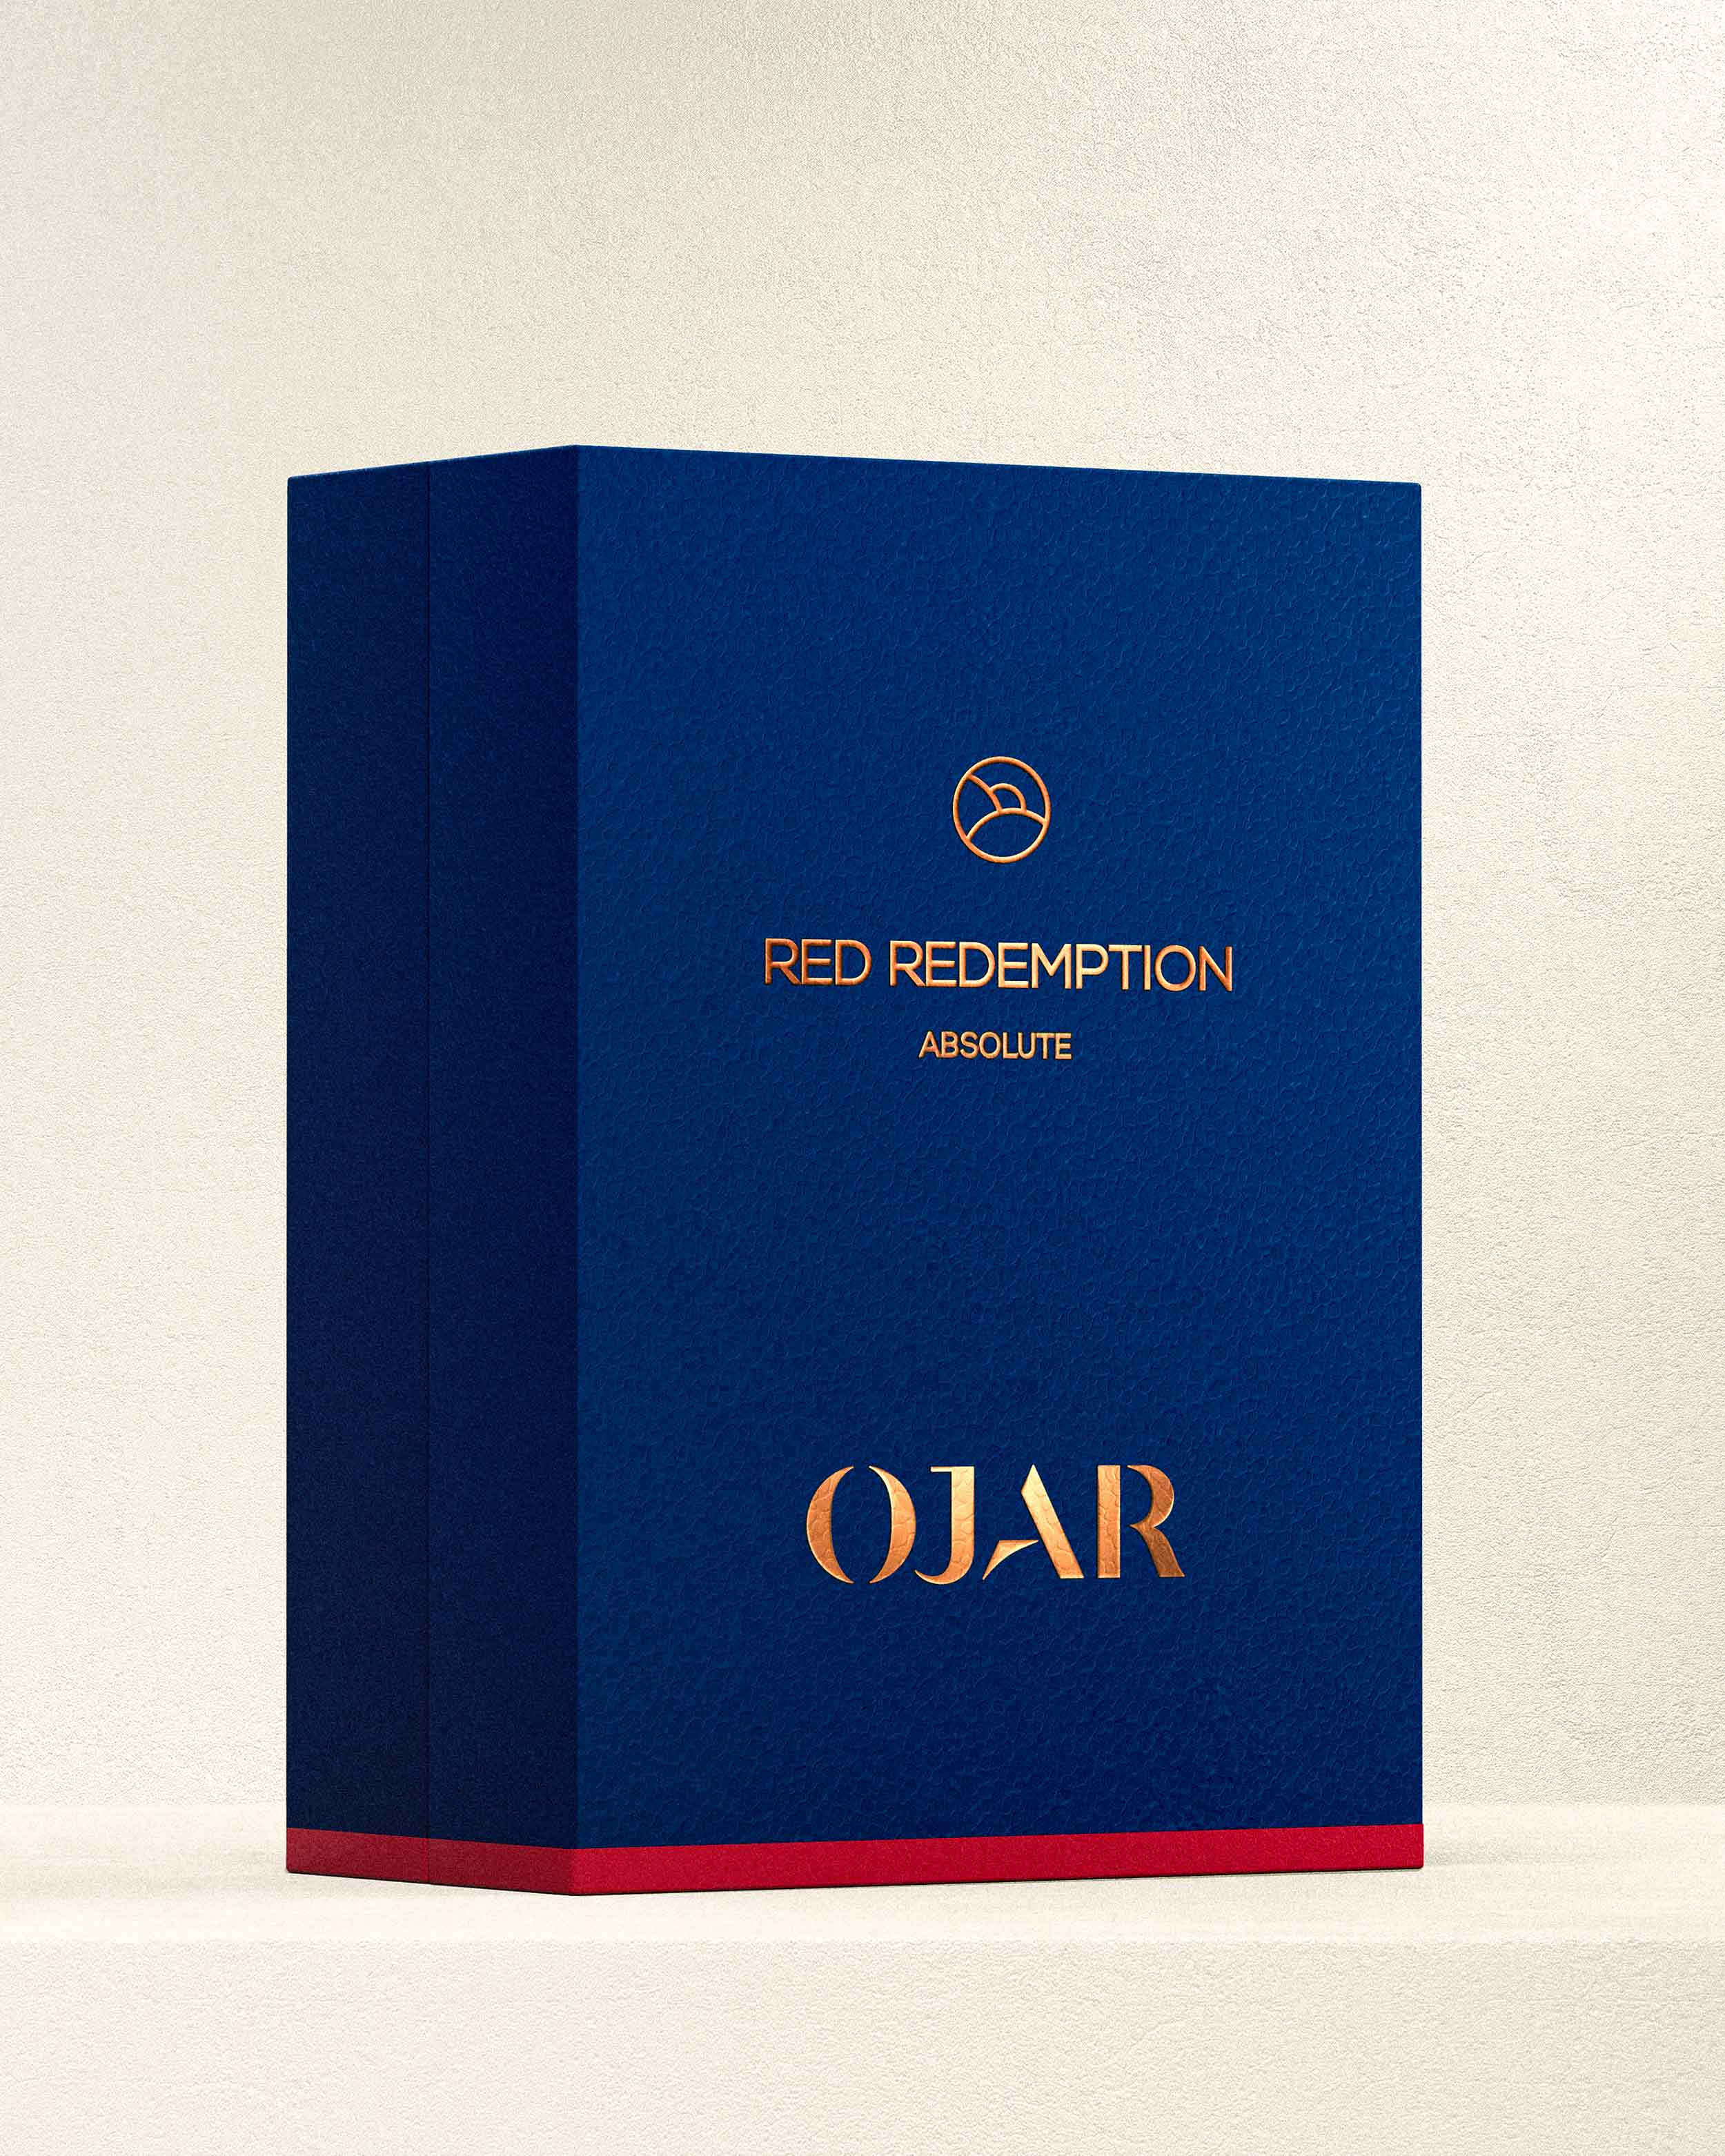 OJAR Absolute Red Redemption Perfume Pack